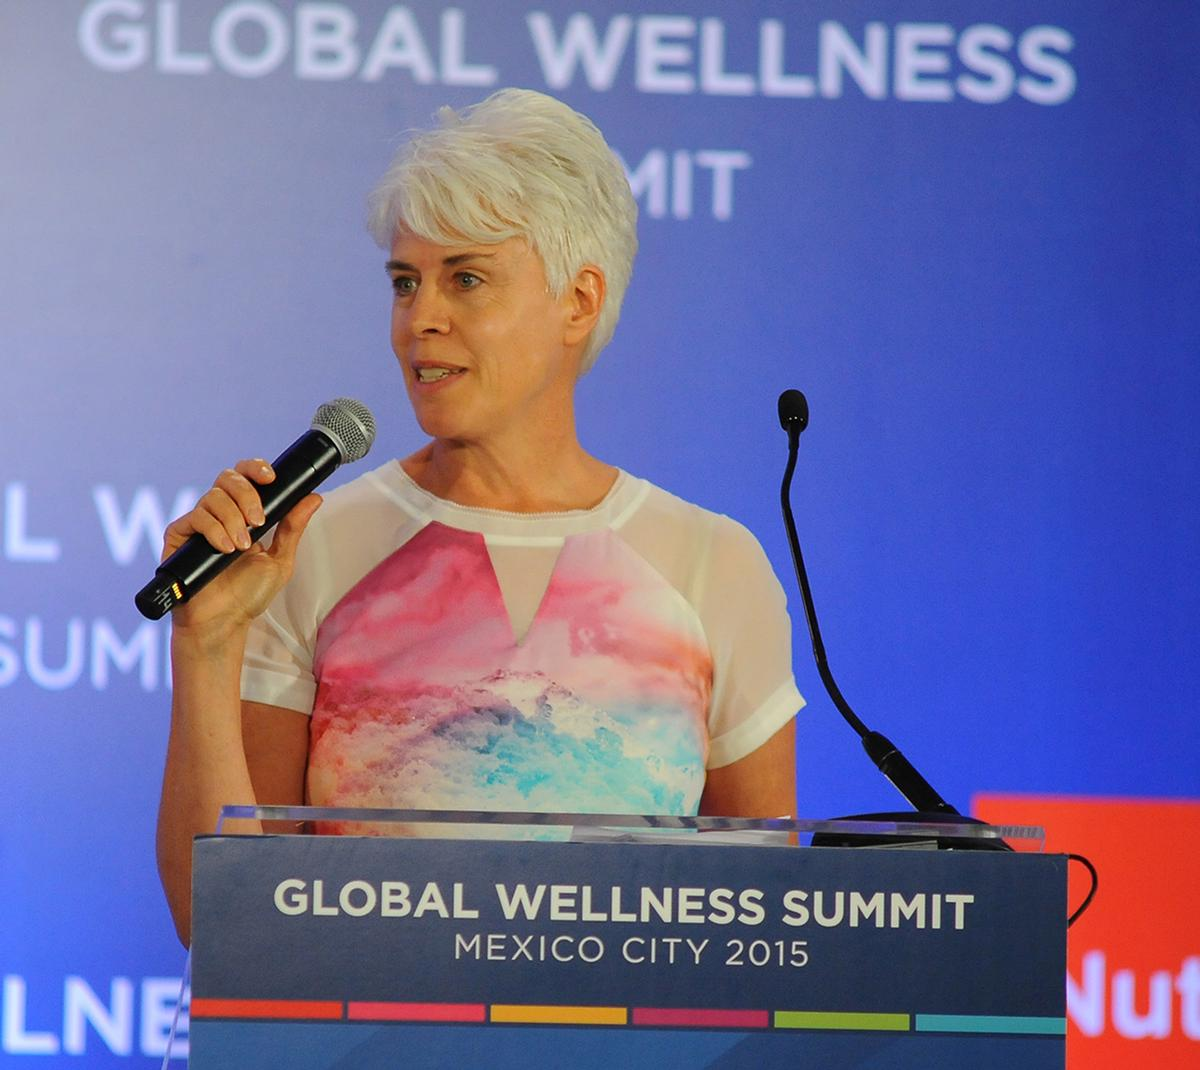 Liz Terry, CEO of Leisure Media and editor of <i>CLADmag</i>, identified two architectural trends for the wellness industry at the Global Wellness Summit in Mexico City / Global Wellness Summit